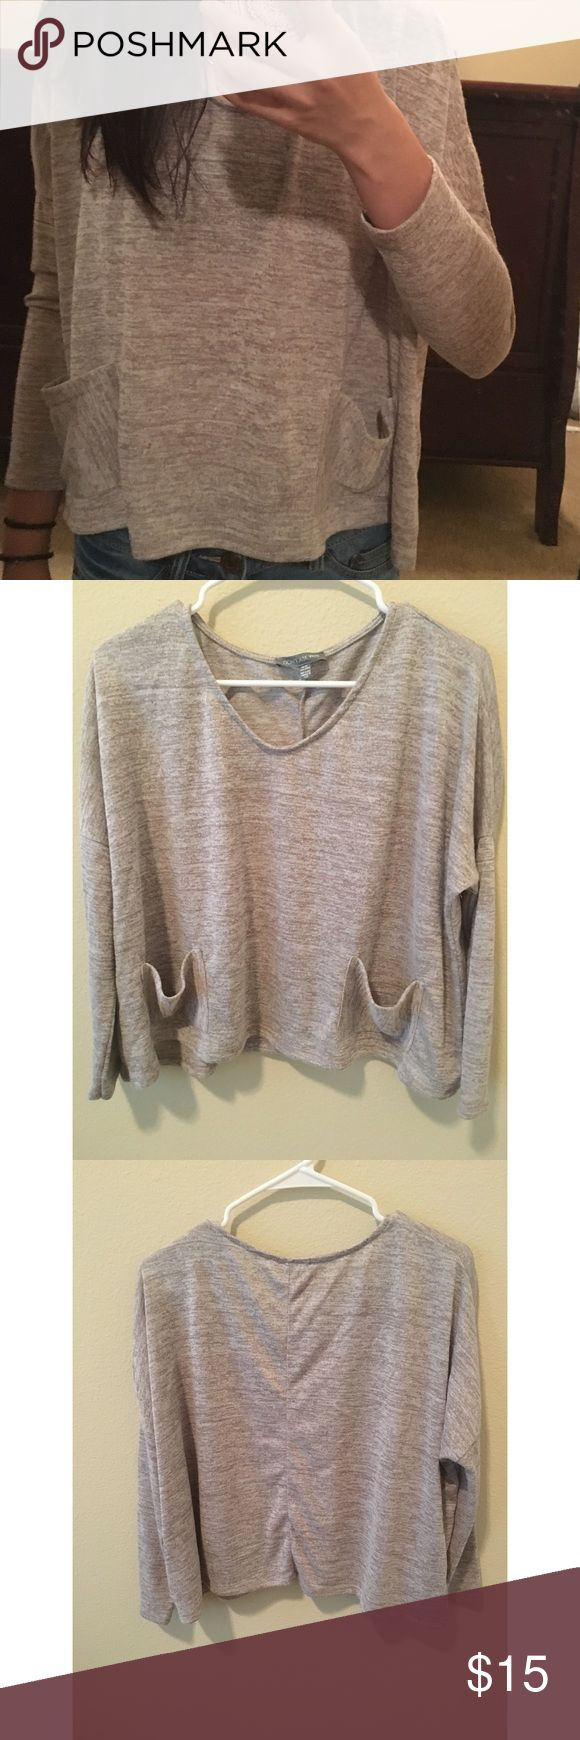 "Cream Long Sleeve Top!! very light and perfect for layering! comes with two pockets and is from the ""don't ask why"" collection at American Eagle. worn only once and in great condition! American Eagle Outfitters Tops Tees - Long Sleeve"